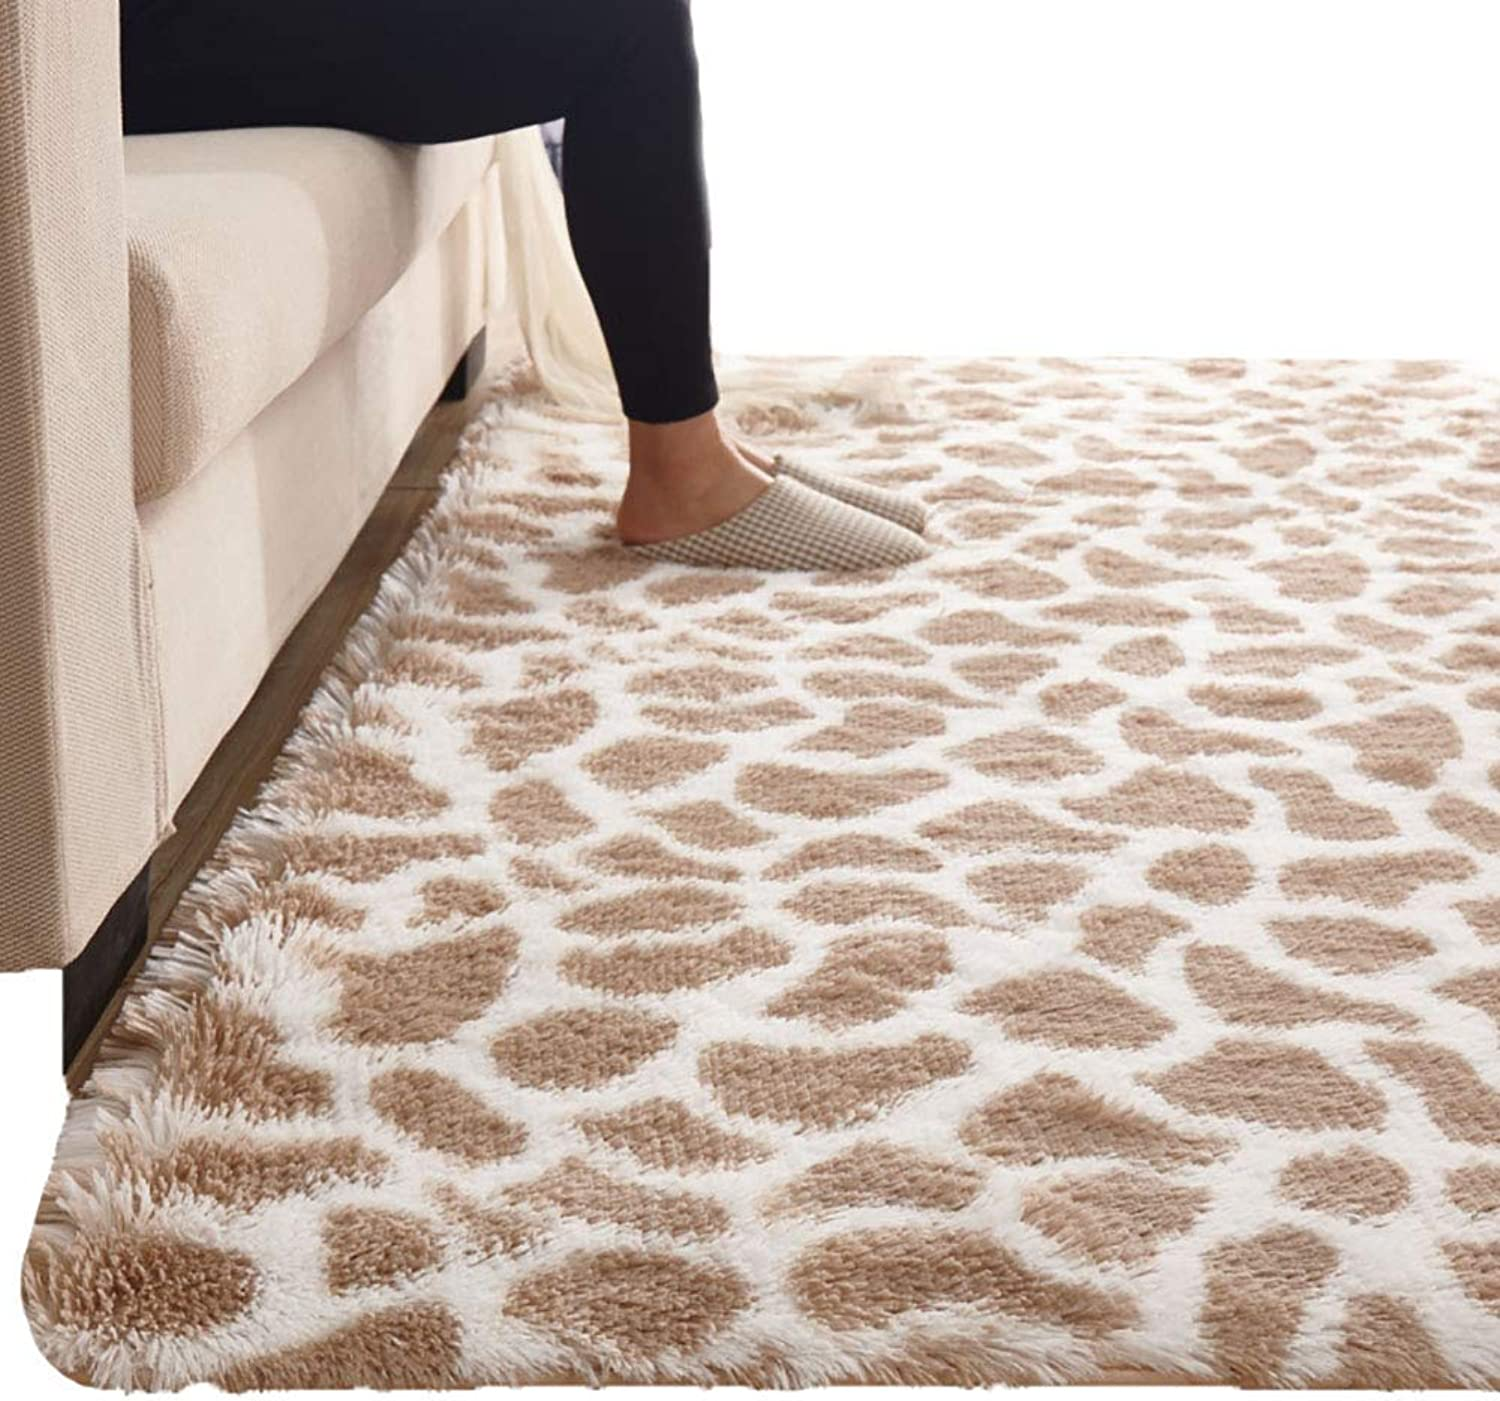 Royare Home Decorations mat Rugs Rectangular Carpets Plush Fluffy Cleanable Bedroom Bedside Bed Front Living Room Coffee Table Area (Size   0.8x2m) (Size   1x2m)